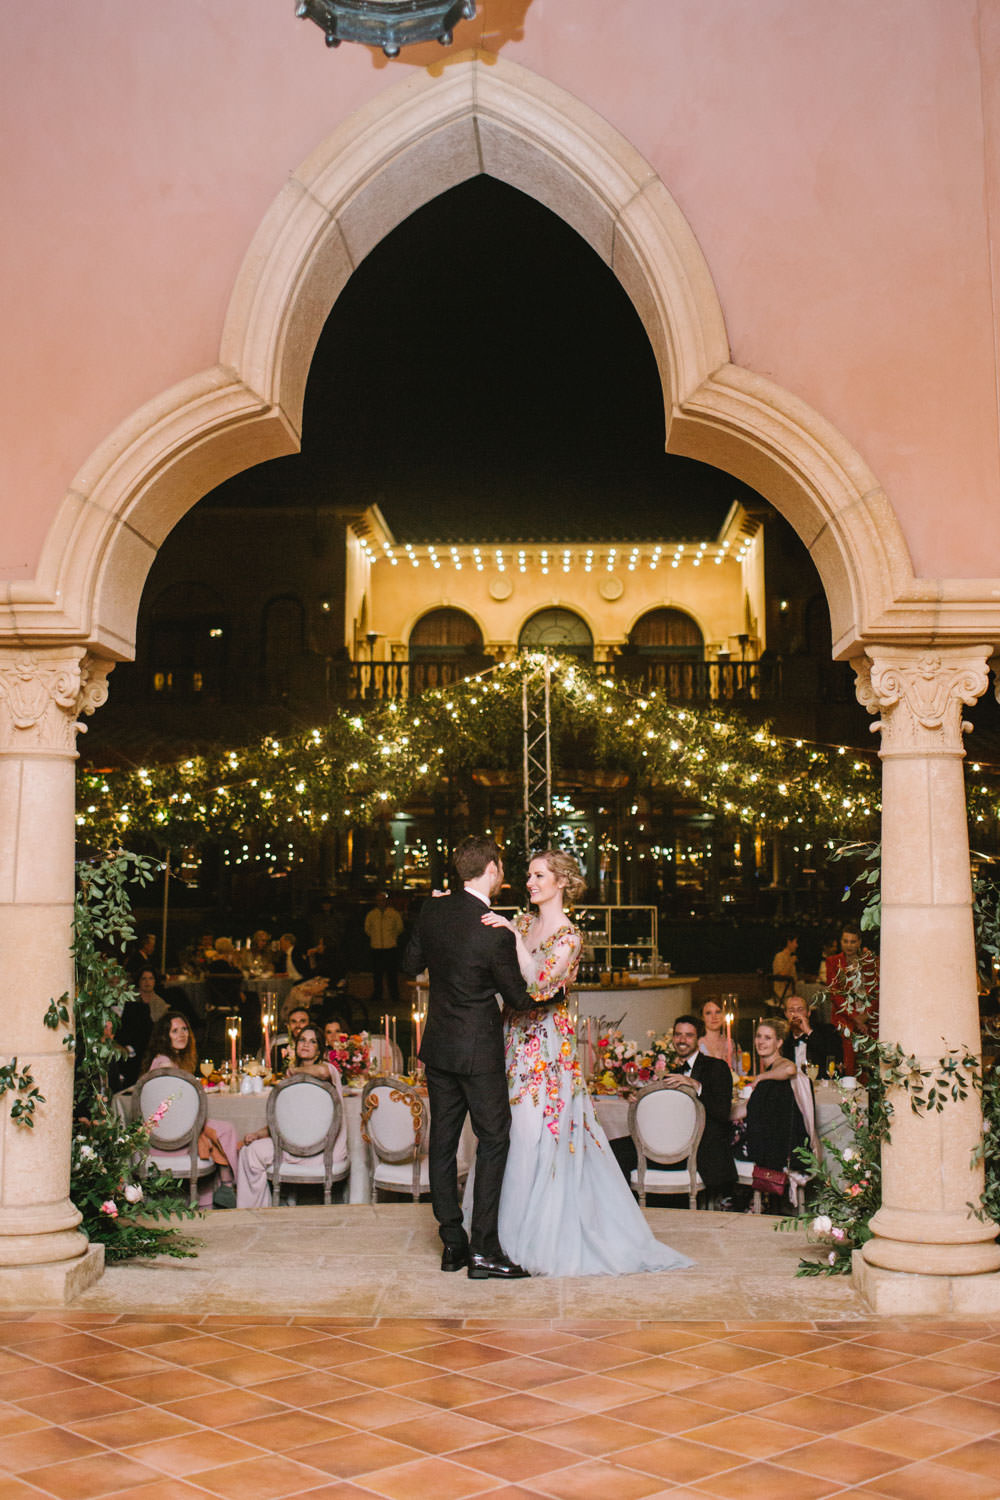 Bride and groom first dance on a stage with with wagon wheel market lights covered in greenery in the background. Bride wearing colorful Marchesa wedding gown with blue, pink, yellow, green, and orange floral appliques. A Wedding Photographer's Fairmont Grand Del Mar Wedding